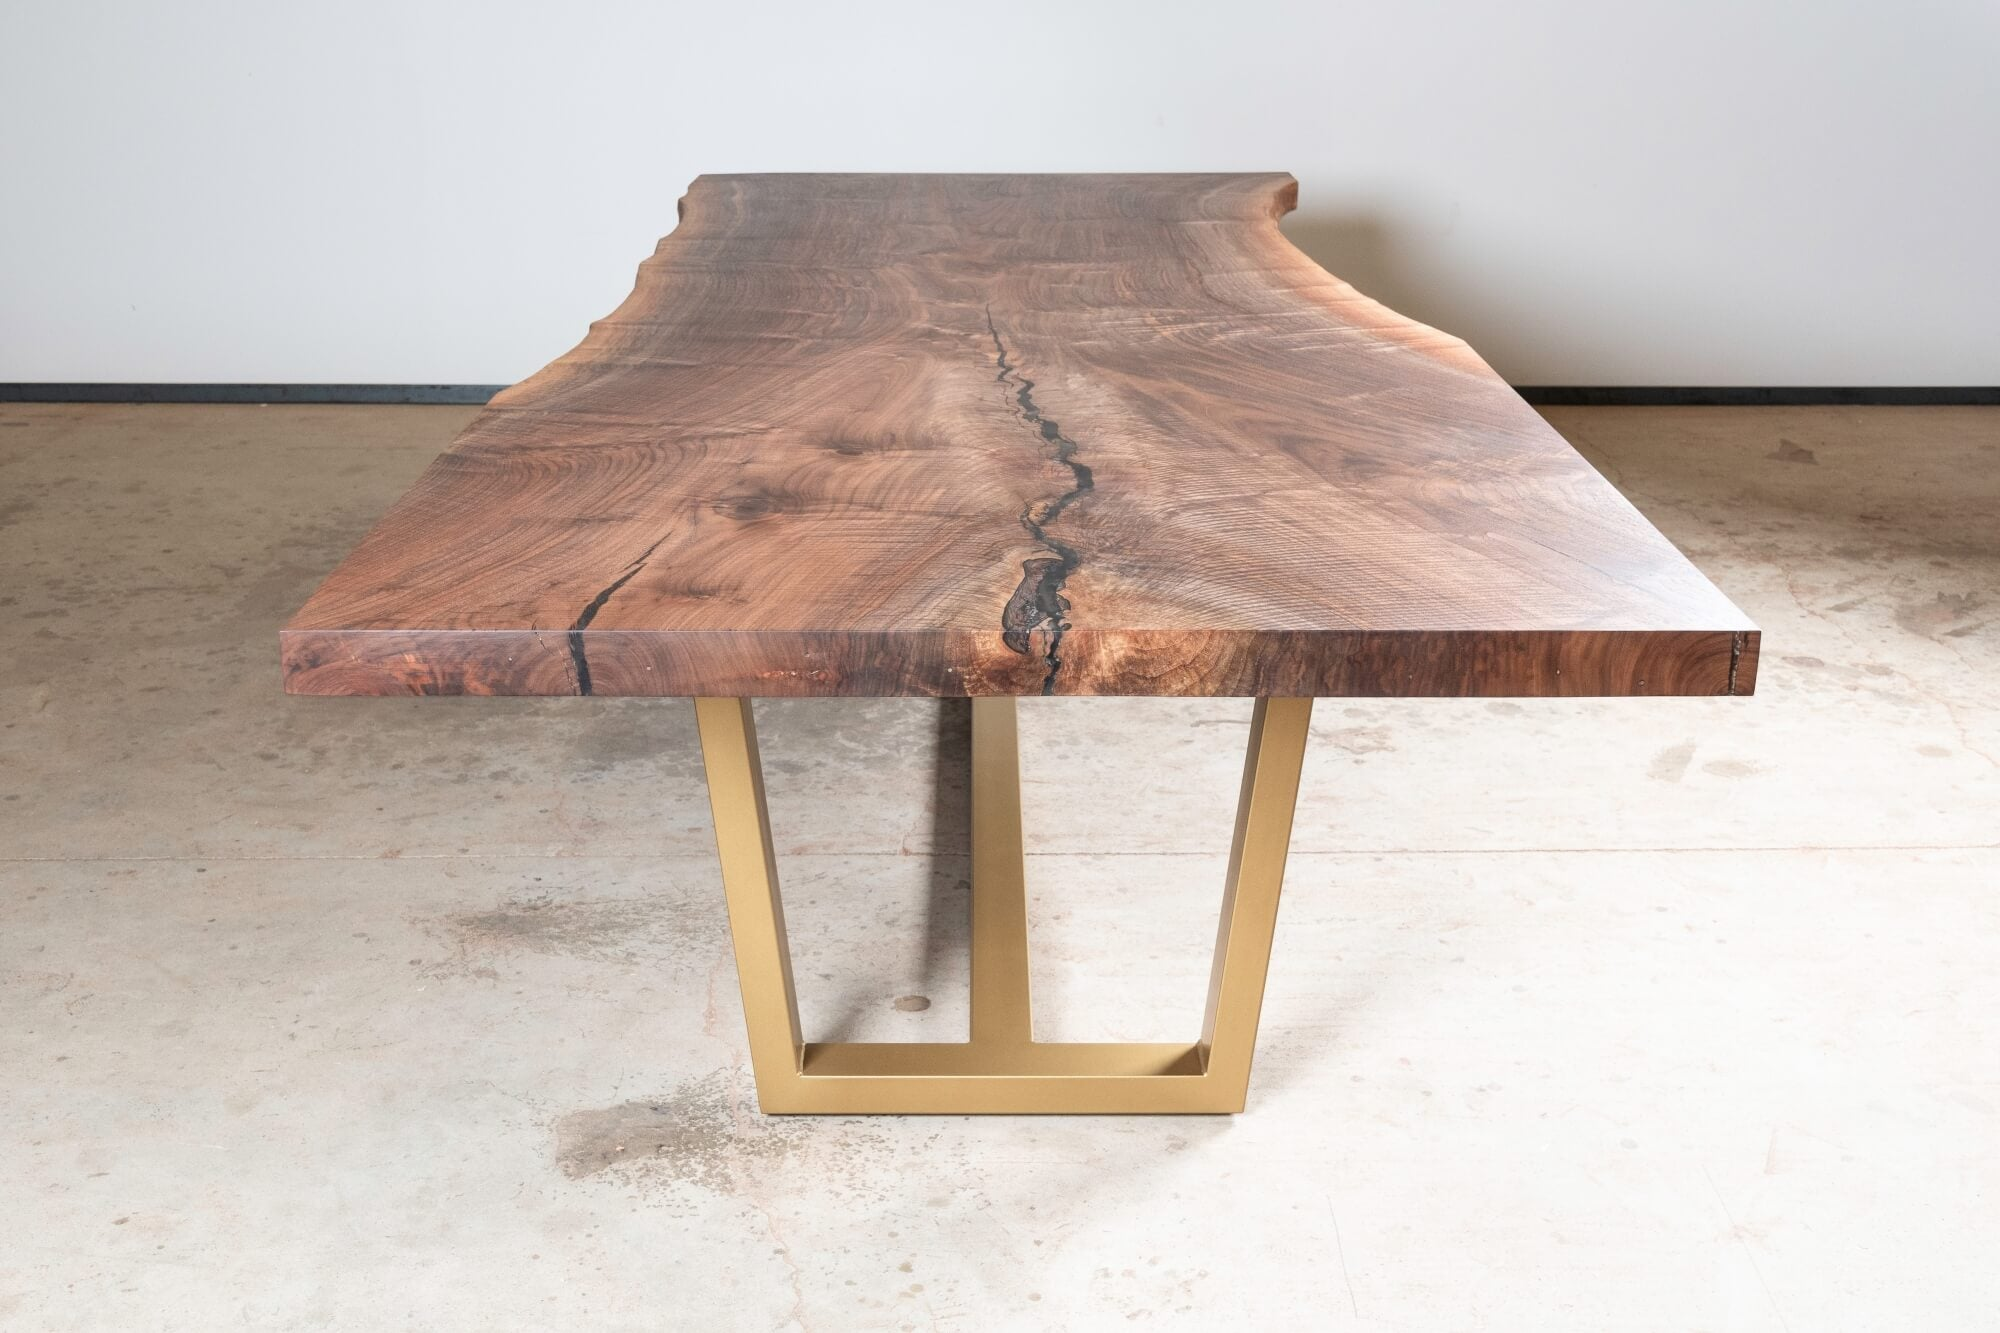 Wooden live edge table finished with Rubio Monocoat.